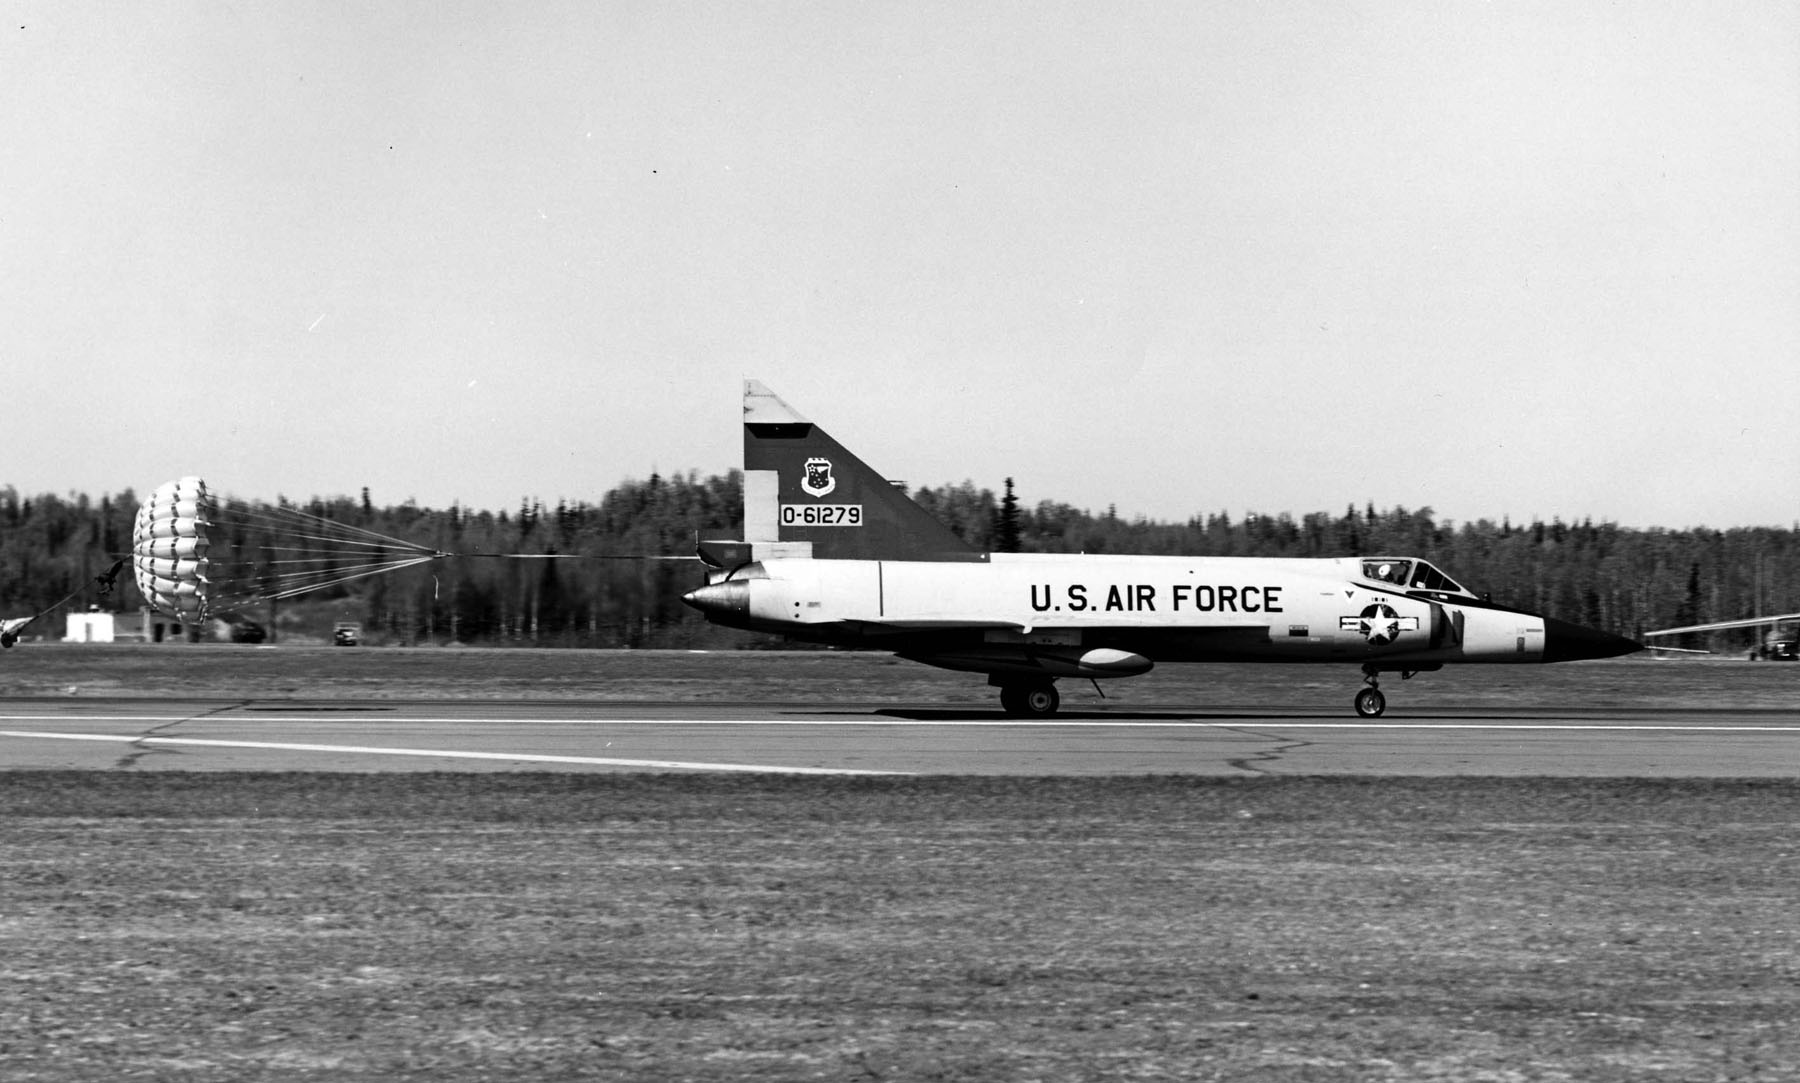 File:Convair F-102A-75-LO (SN 56-1279)